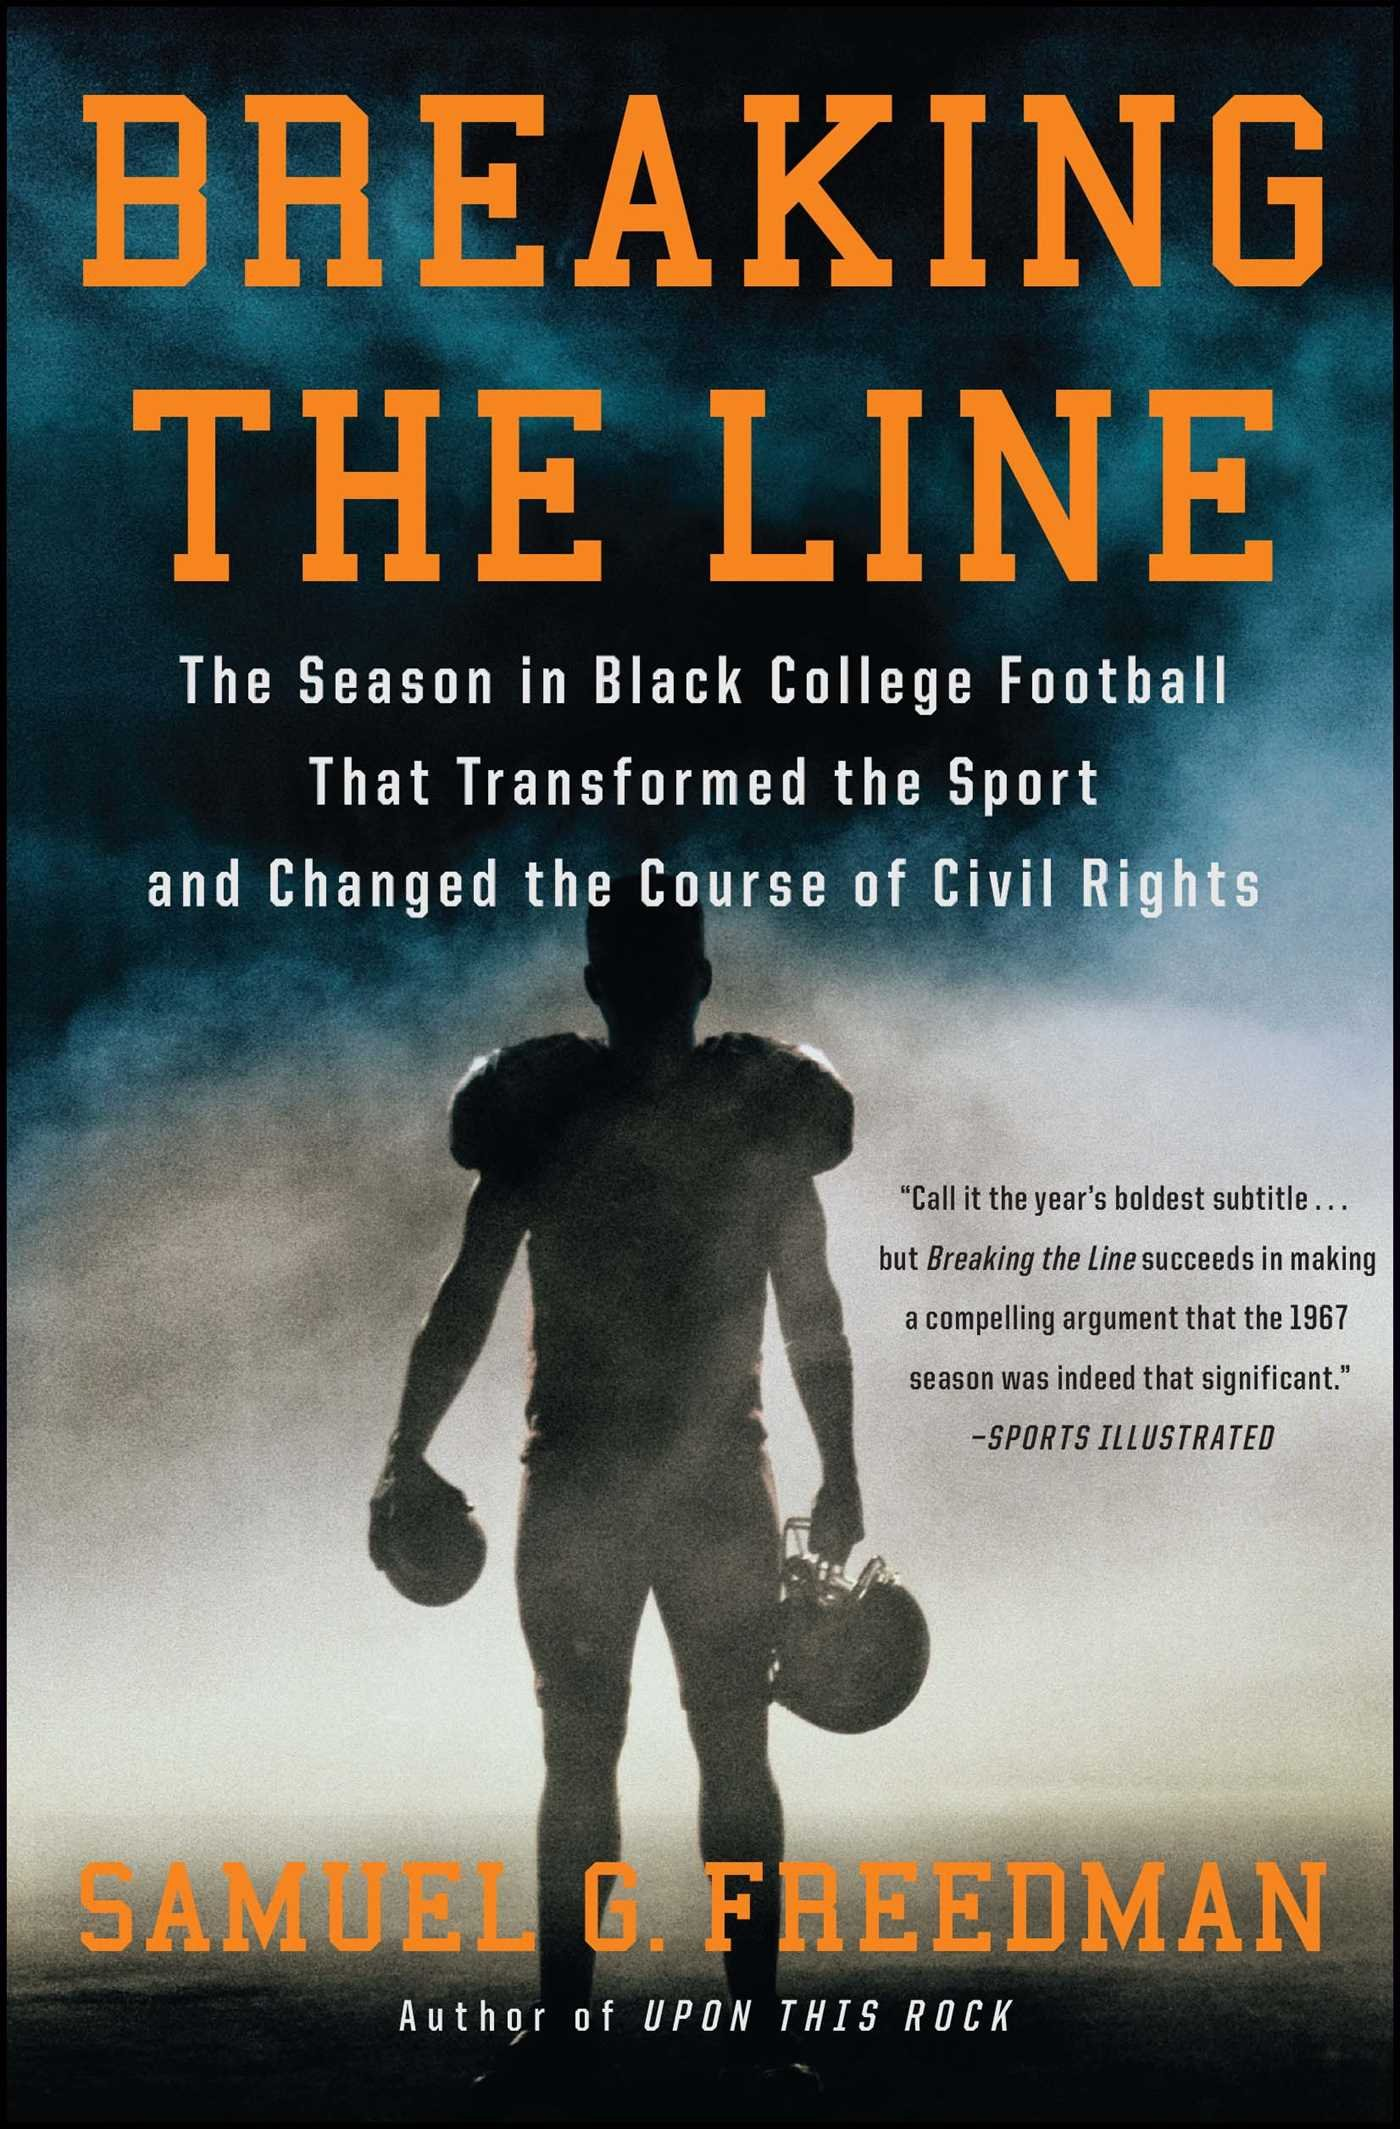 Breaking the Line: The Season in Black College Football That Transformed the Sport and Changed the Course of Civil Rights PDF